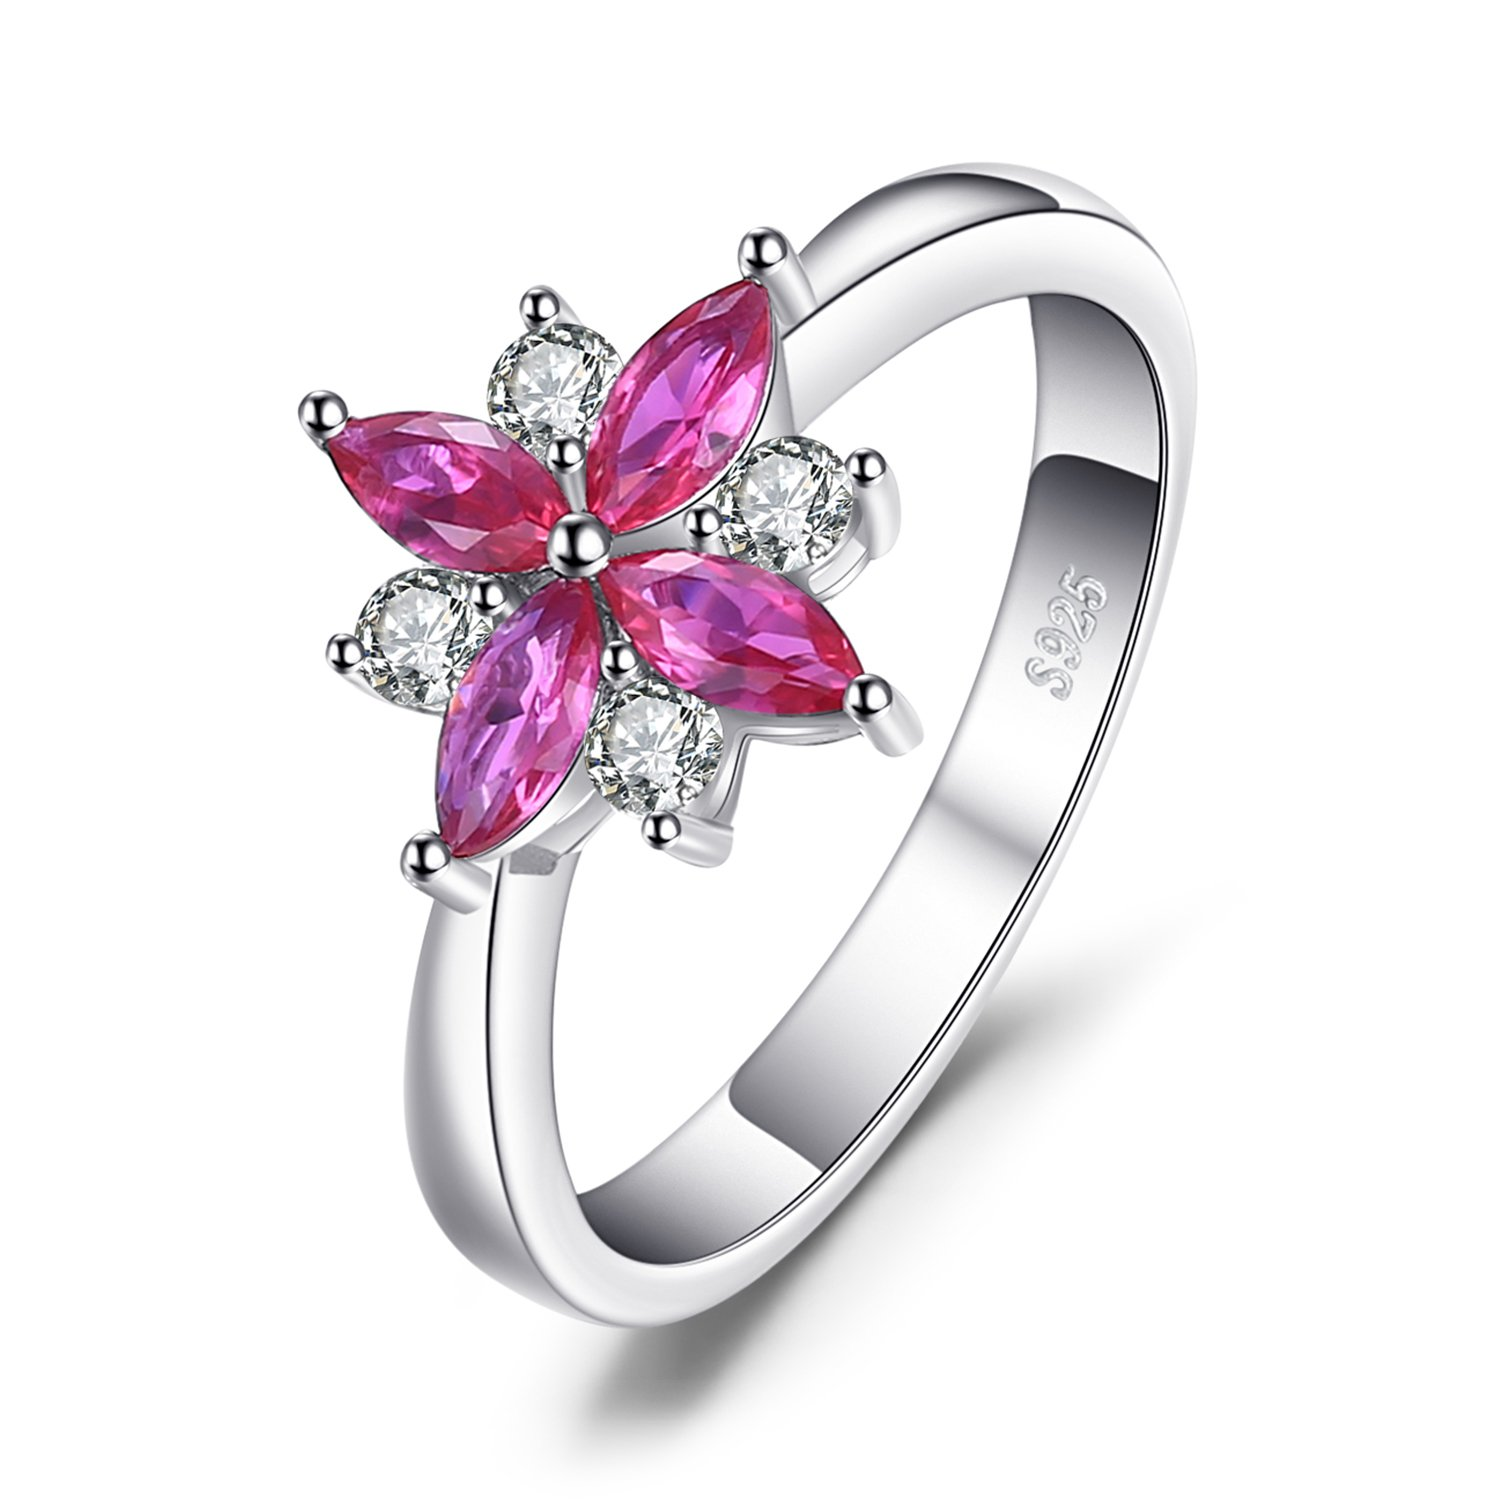 JewelryPalace Flowers 0.85ct Created Ruby Statement Ring 925 Sterling Silver Size 7